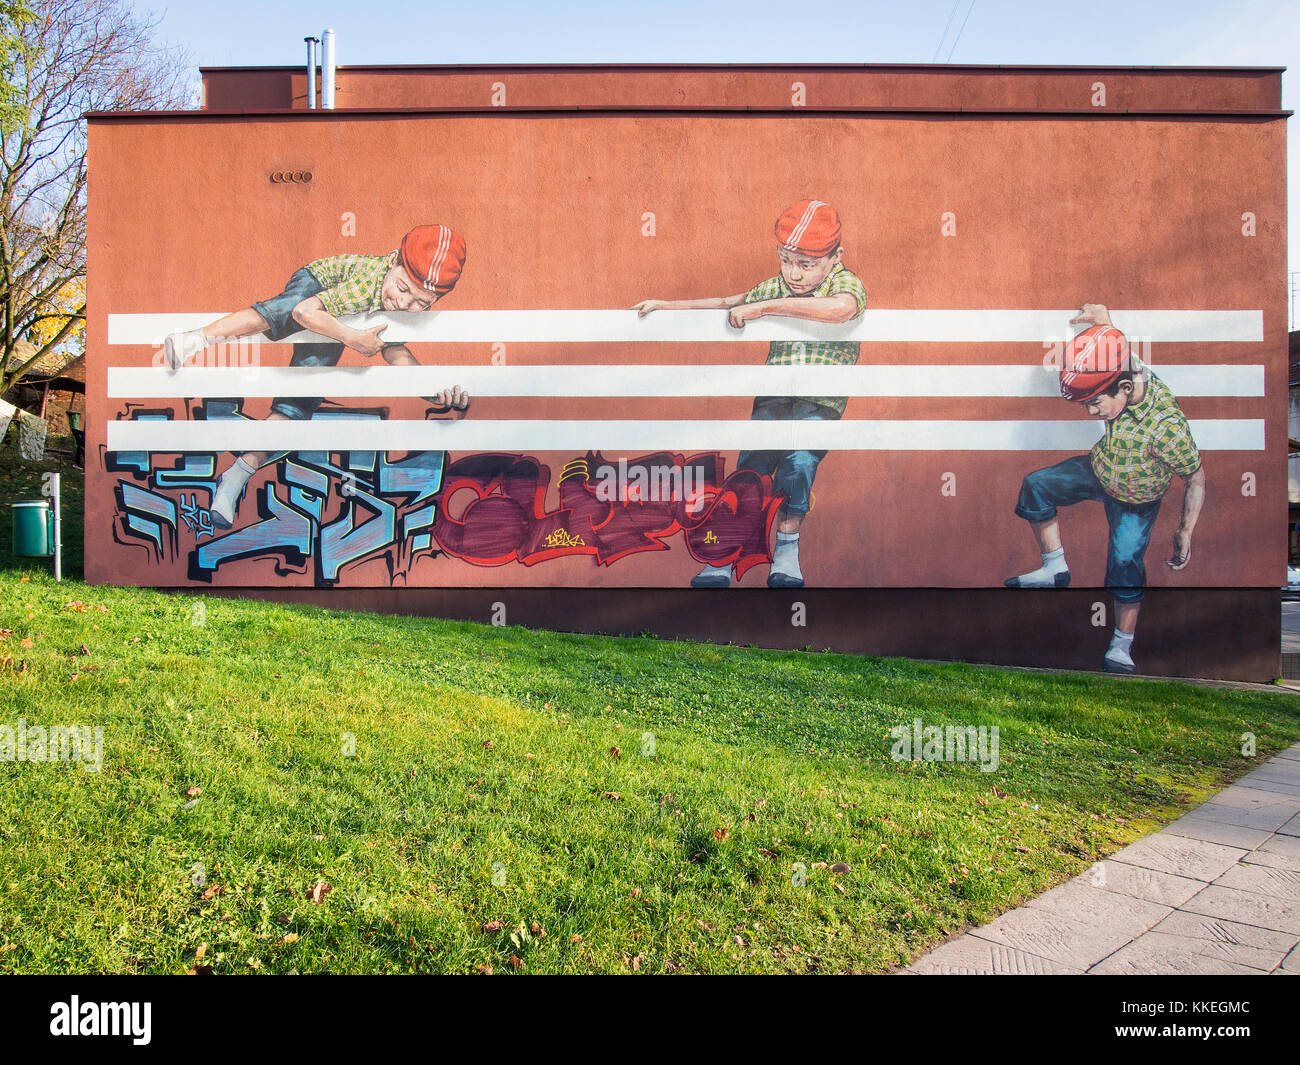 Armonía sofá tal vez  Kids are playing with adidas stripes mural (Graffiti) in Kaunas Stock Photo  - Alamy